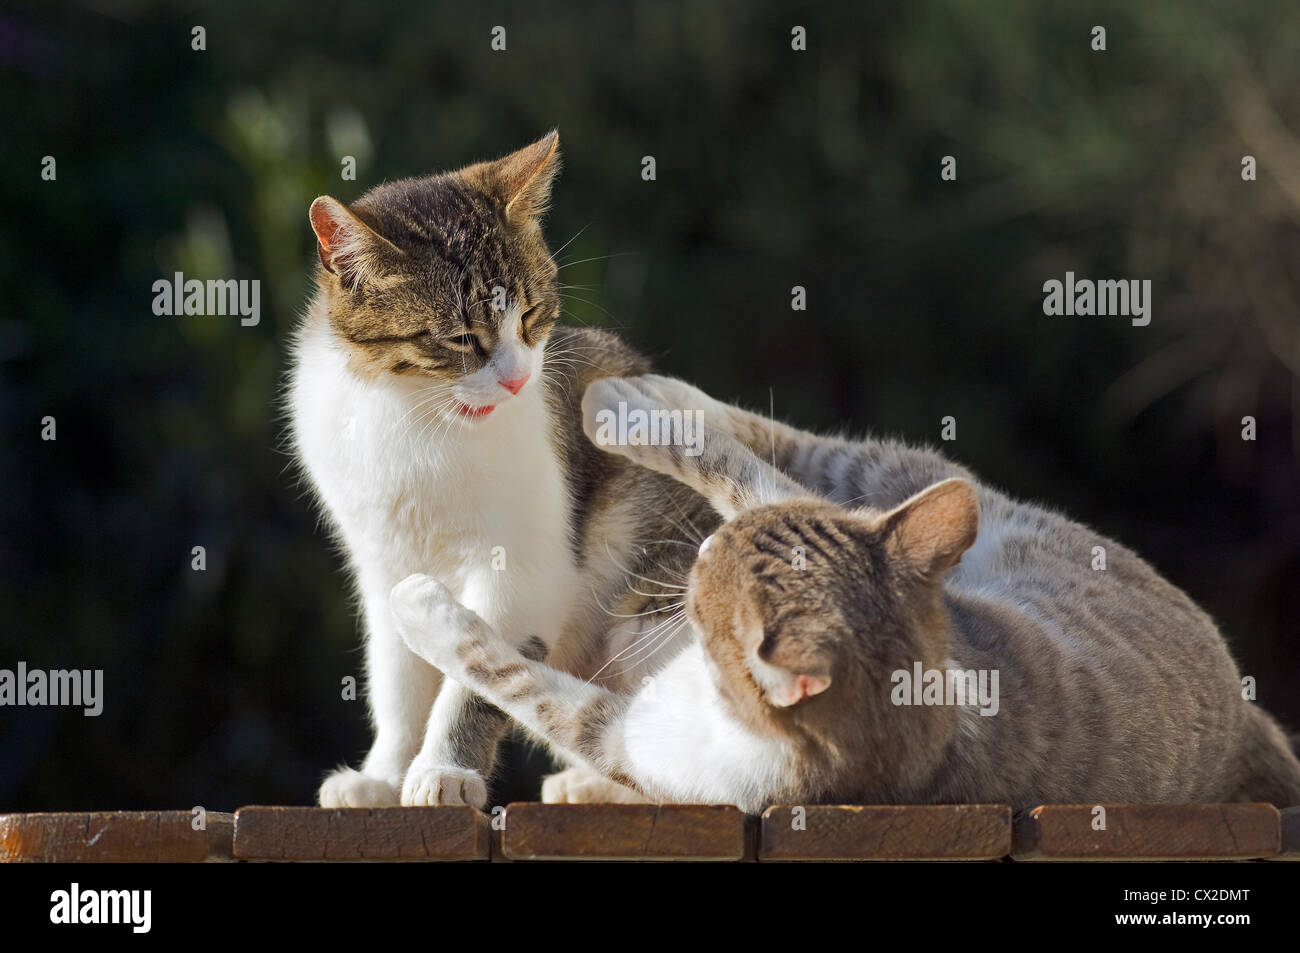 Two struggling cats - Stock Image